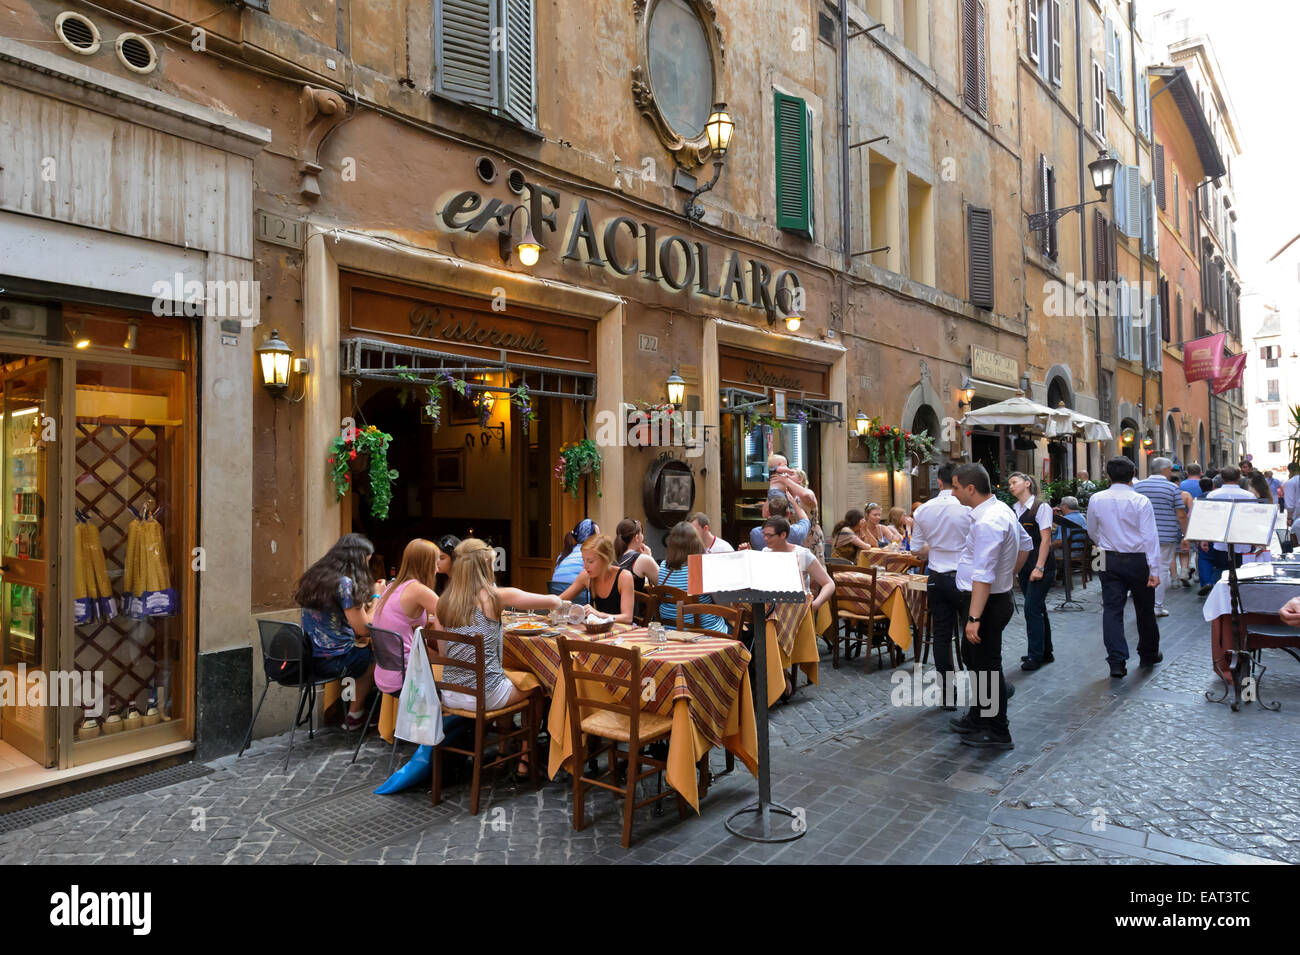 people dining in traditional restaurants in narrow street in the city stock photo royalty free. Black Bedroom Furniture Sets. Home Design Ideas